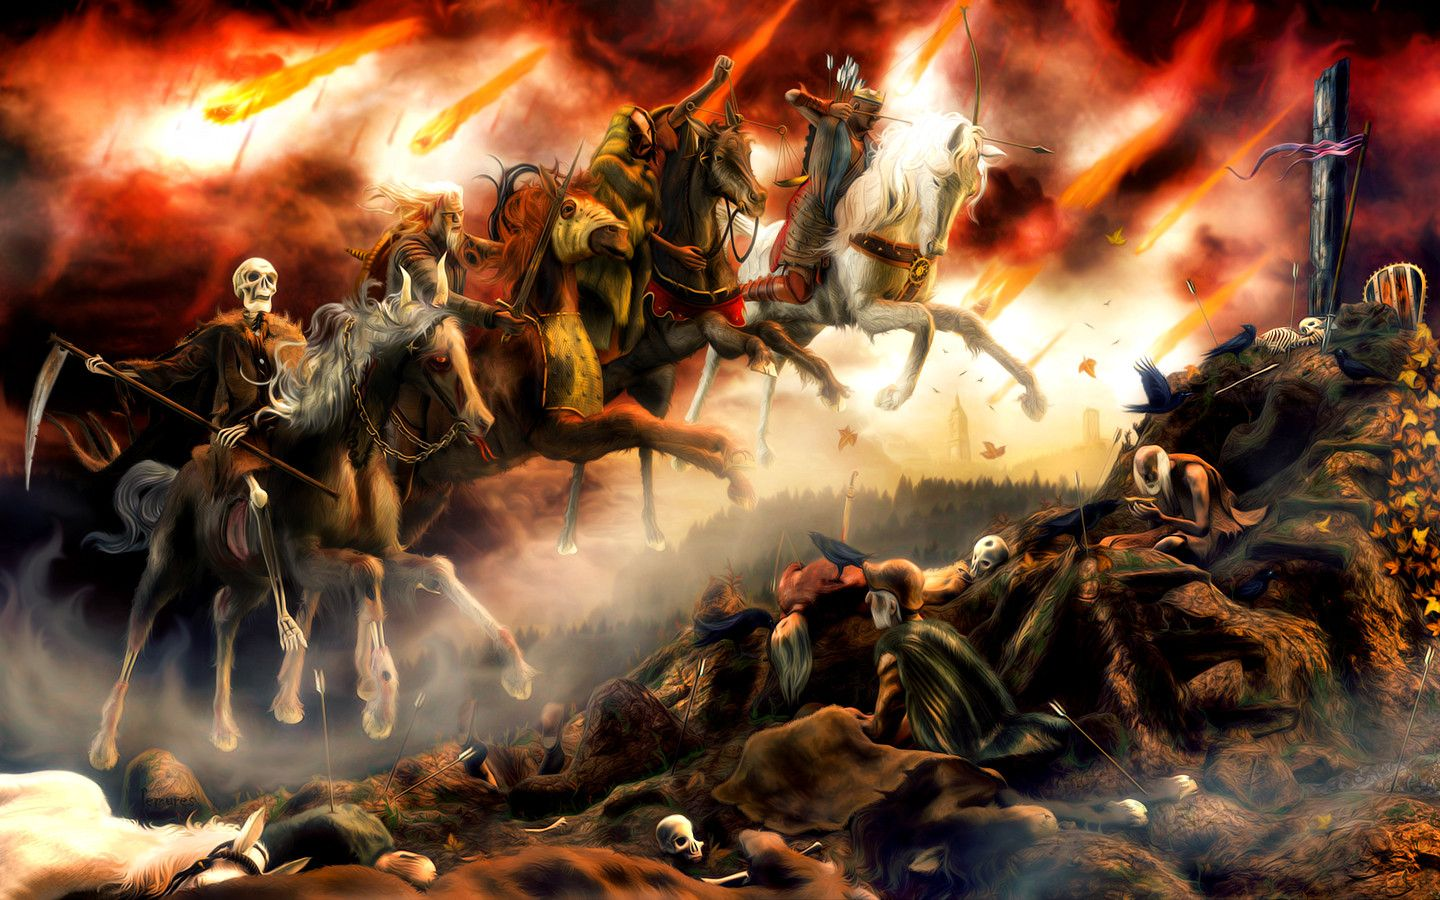 Four Horsemen Of The Apocalypse Wallpapers 1440x900